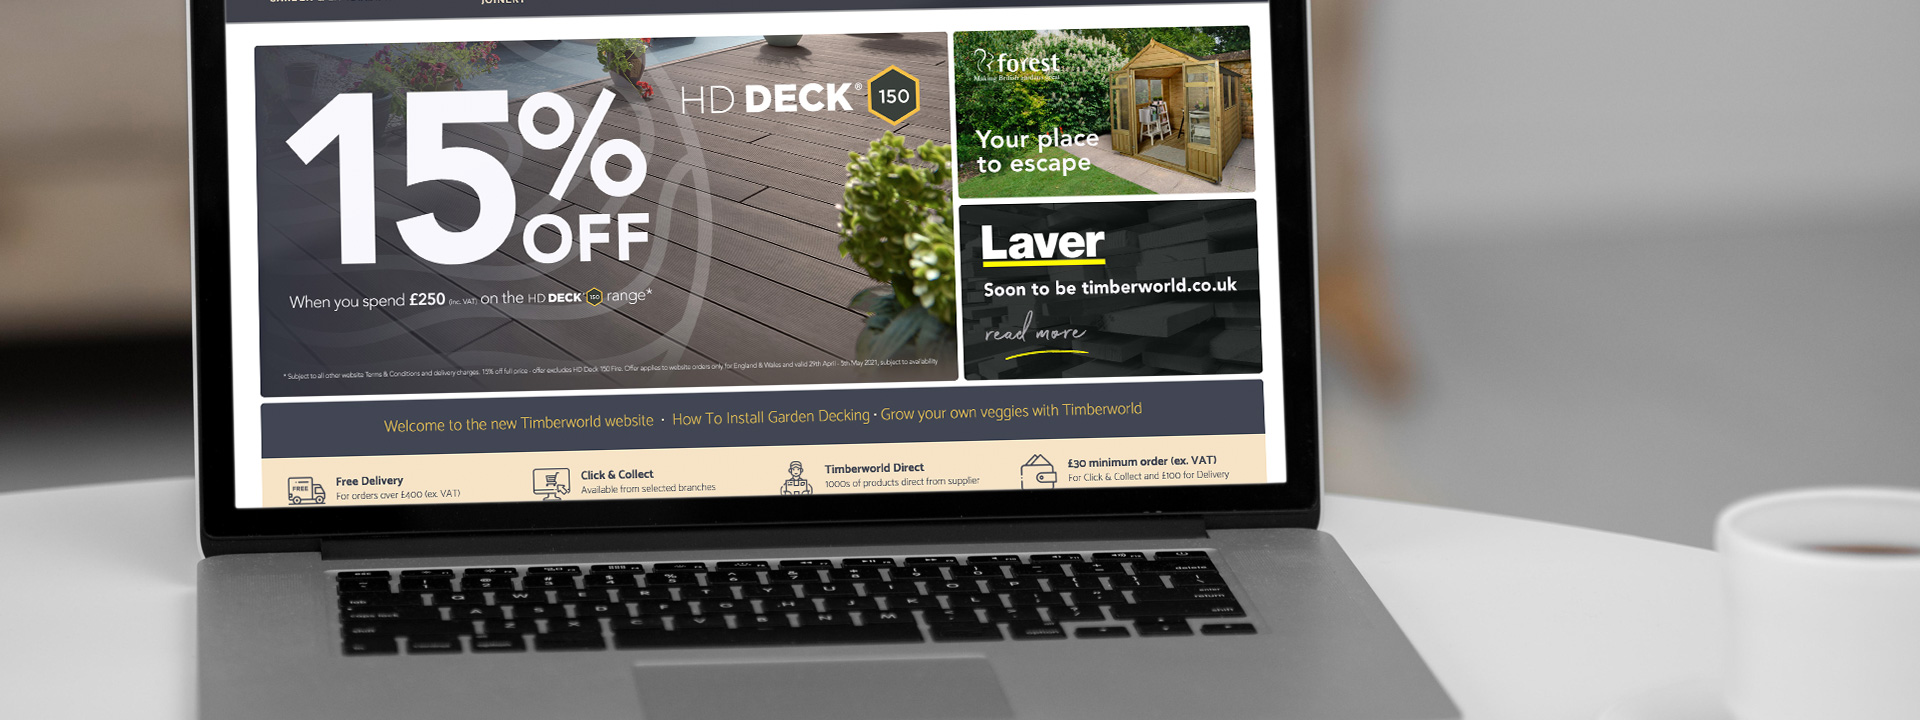 National Timber Group goes live with best-in-class eCommerce